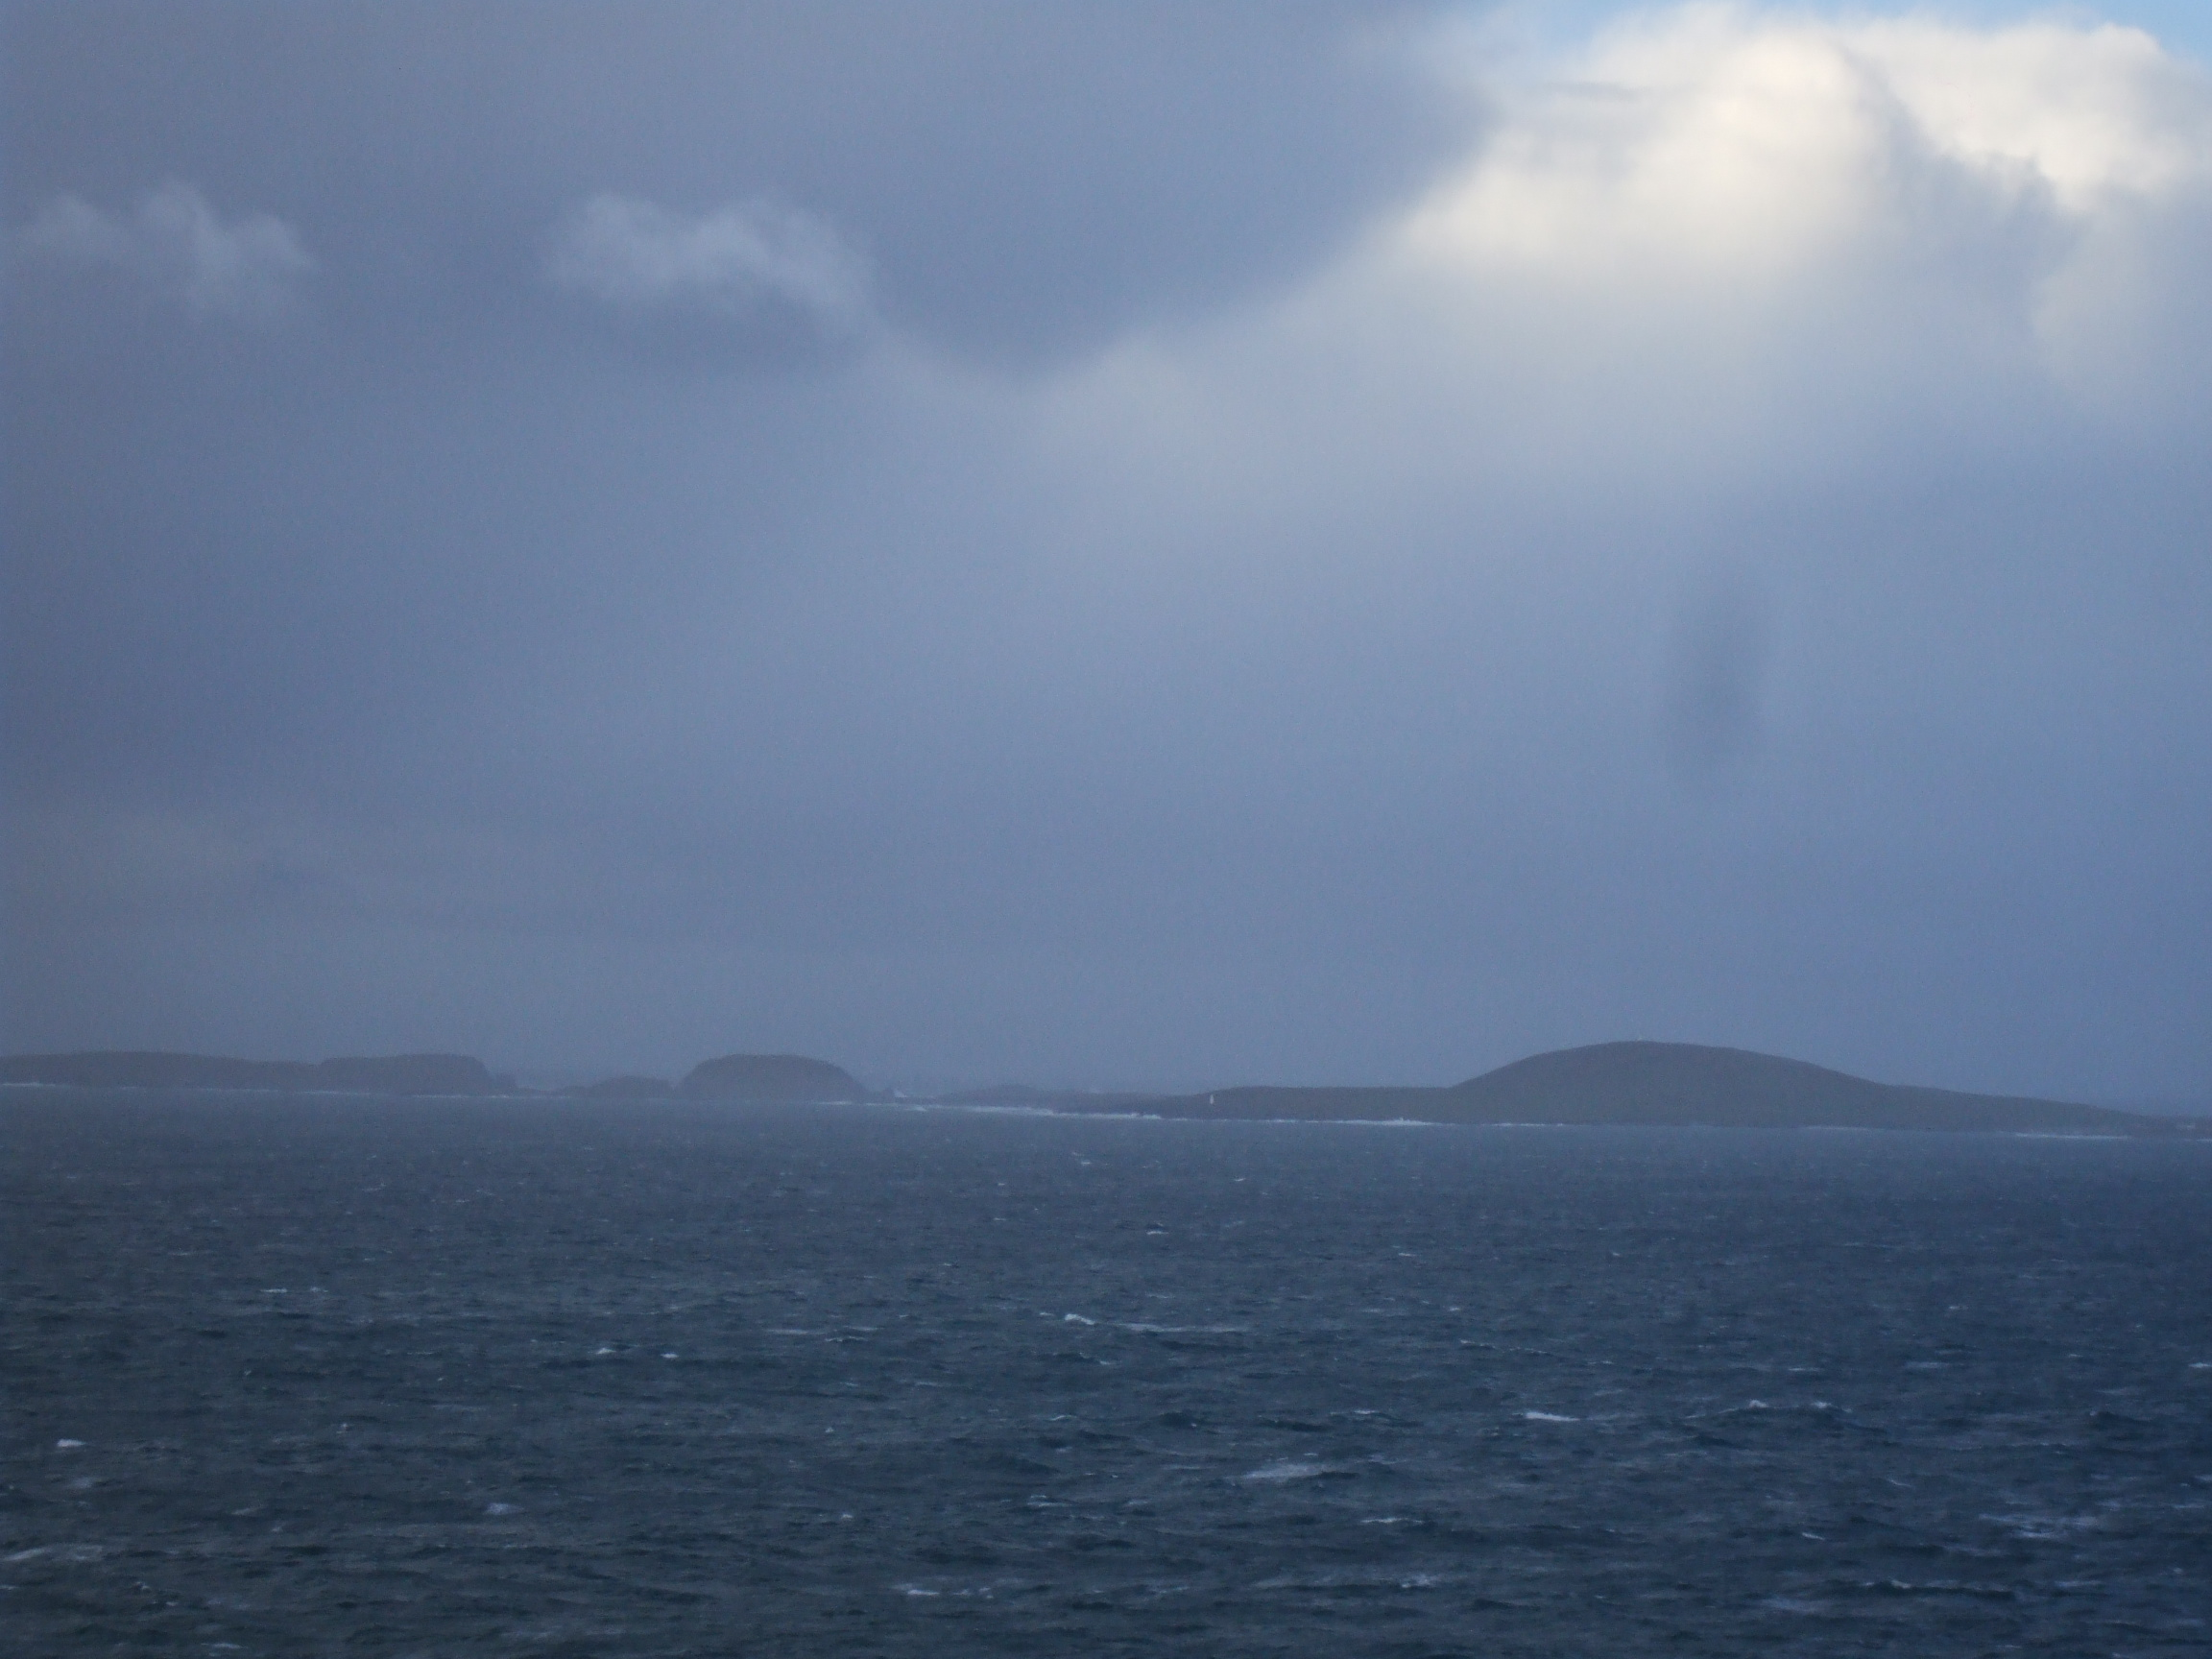 Wild weather, Iniskea Islands, Mayo